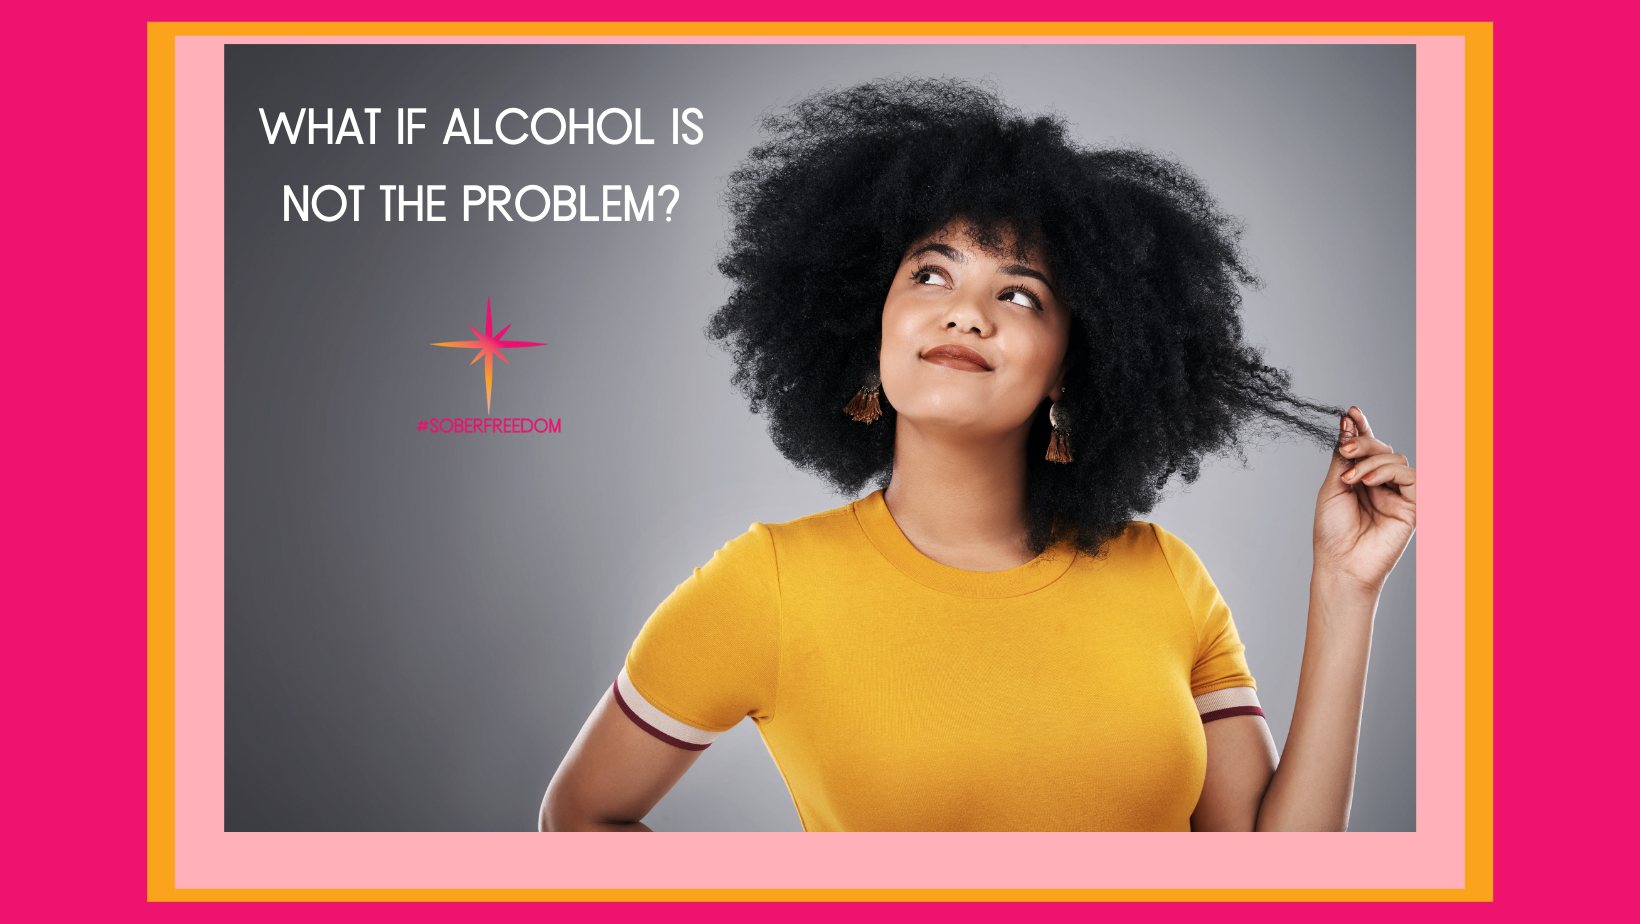 what if alcohol is not the problem sober freedom